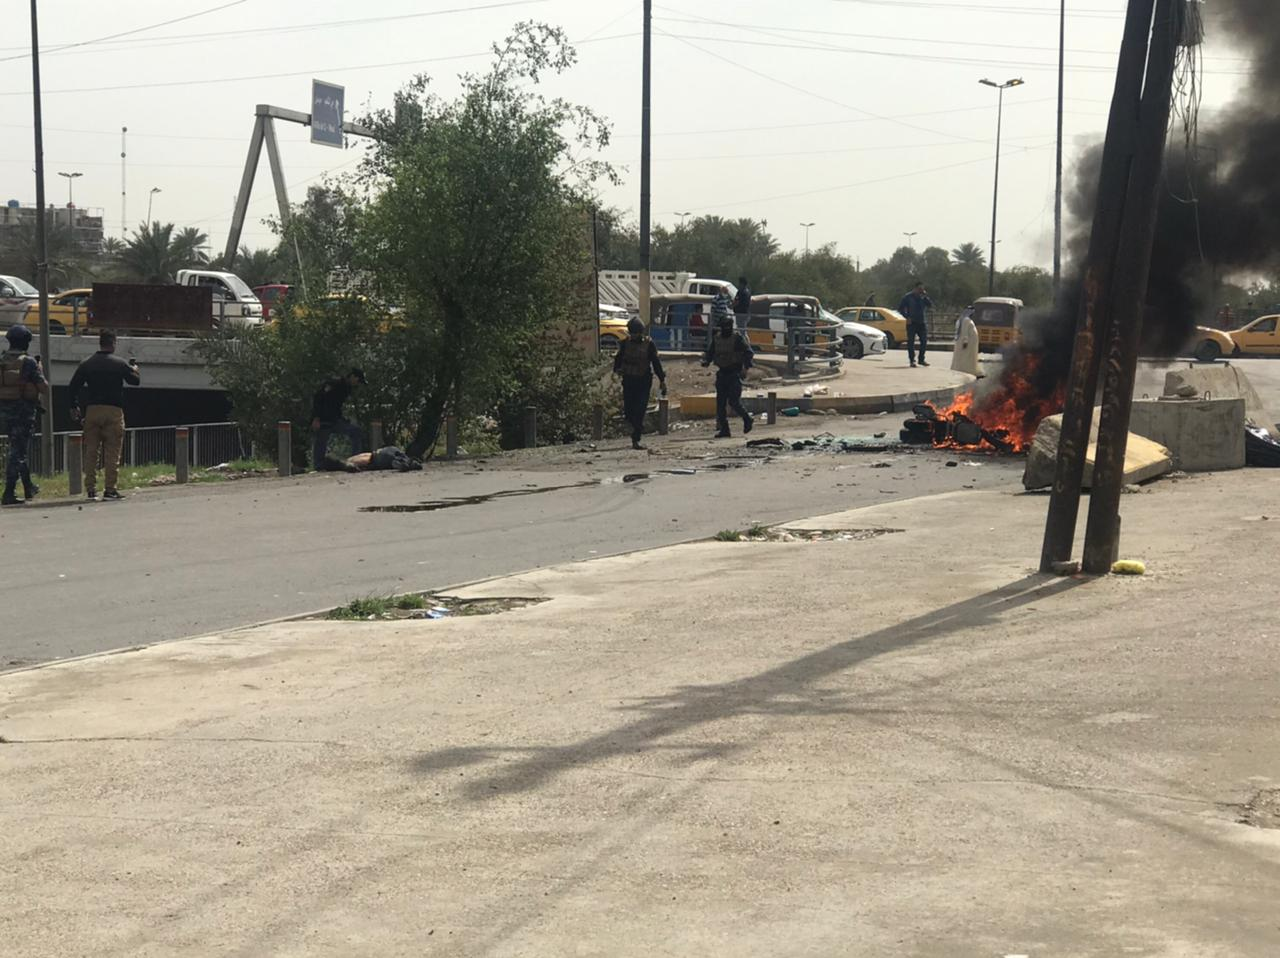 A motorcyclist killed in an explosion in Baghdad